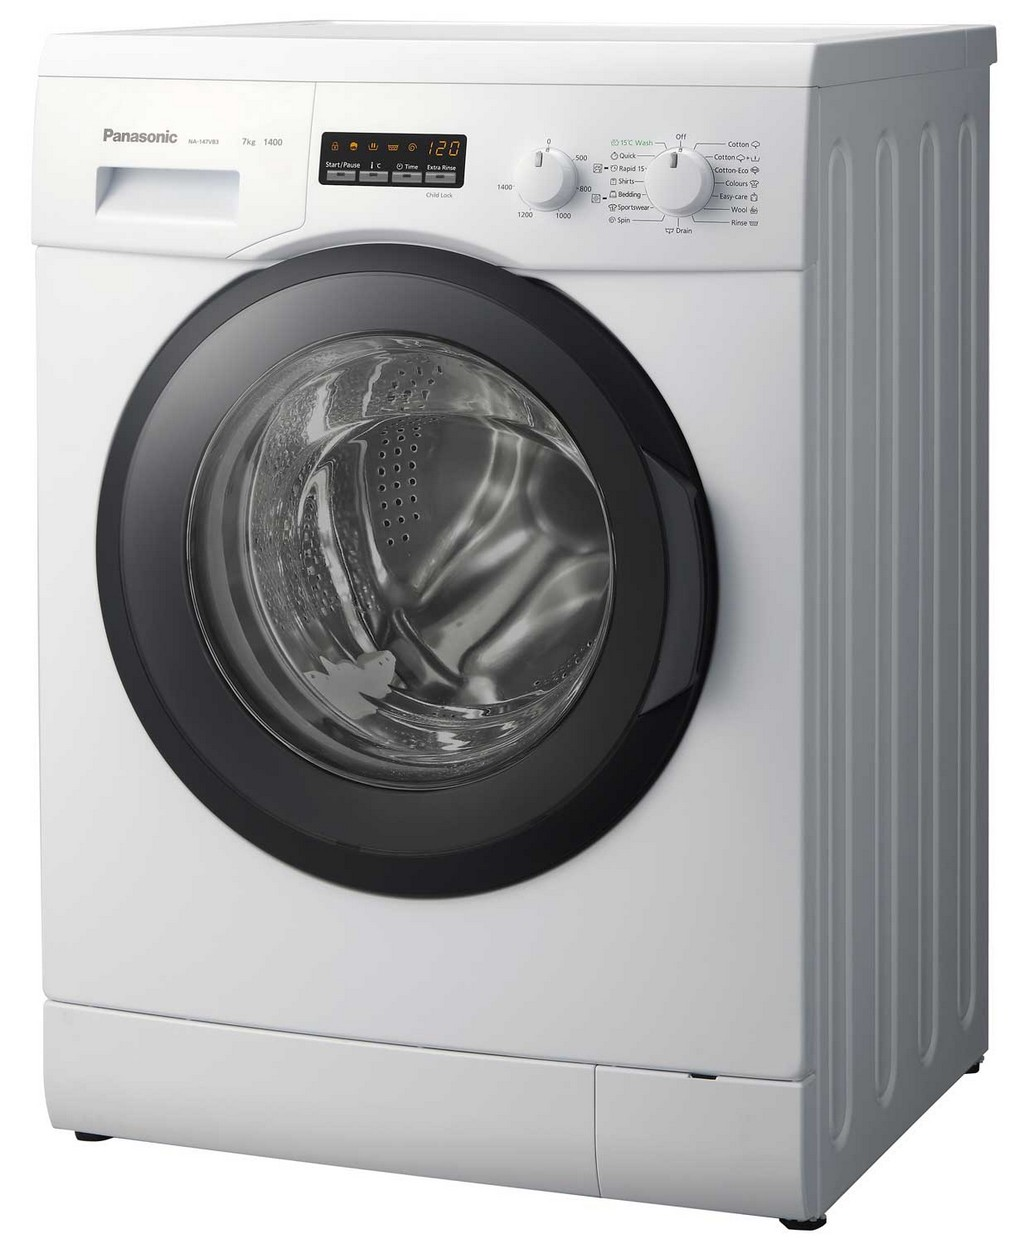 godrej washing machine, how to choose washing machine, haier washing machine